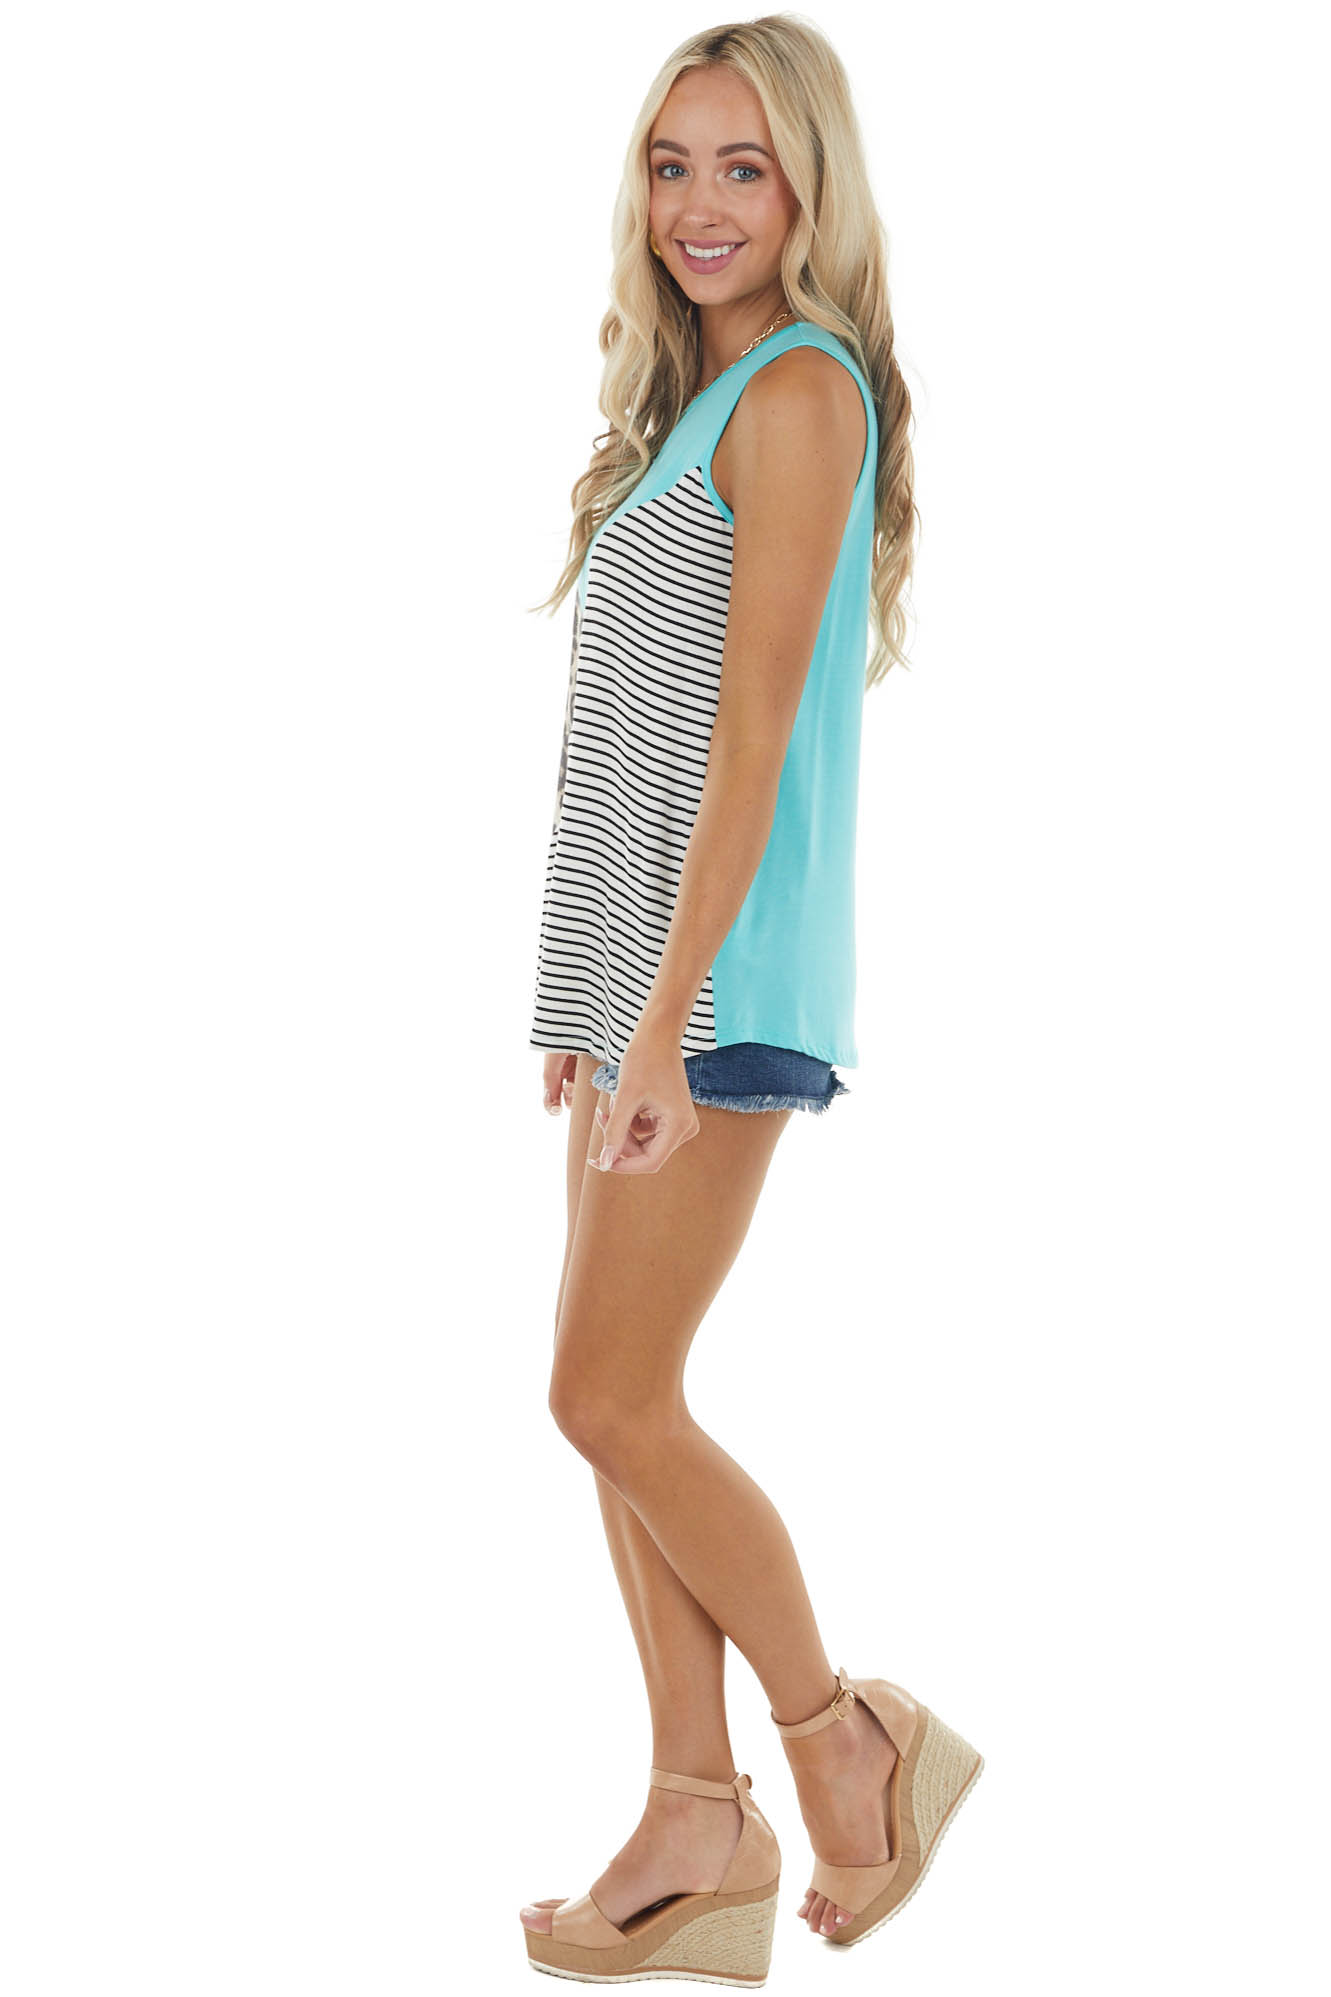 Aqua Sleeveless Stretchy Knit Top with Contrasting Prints